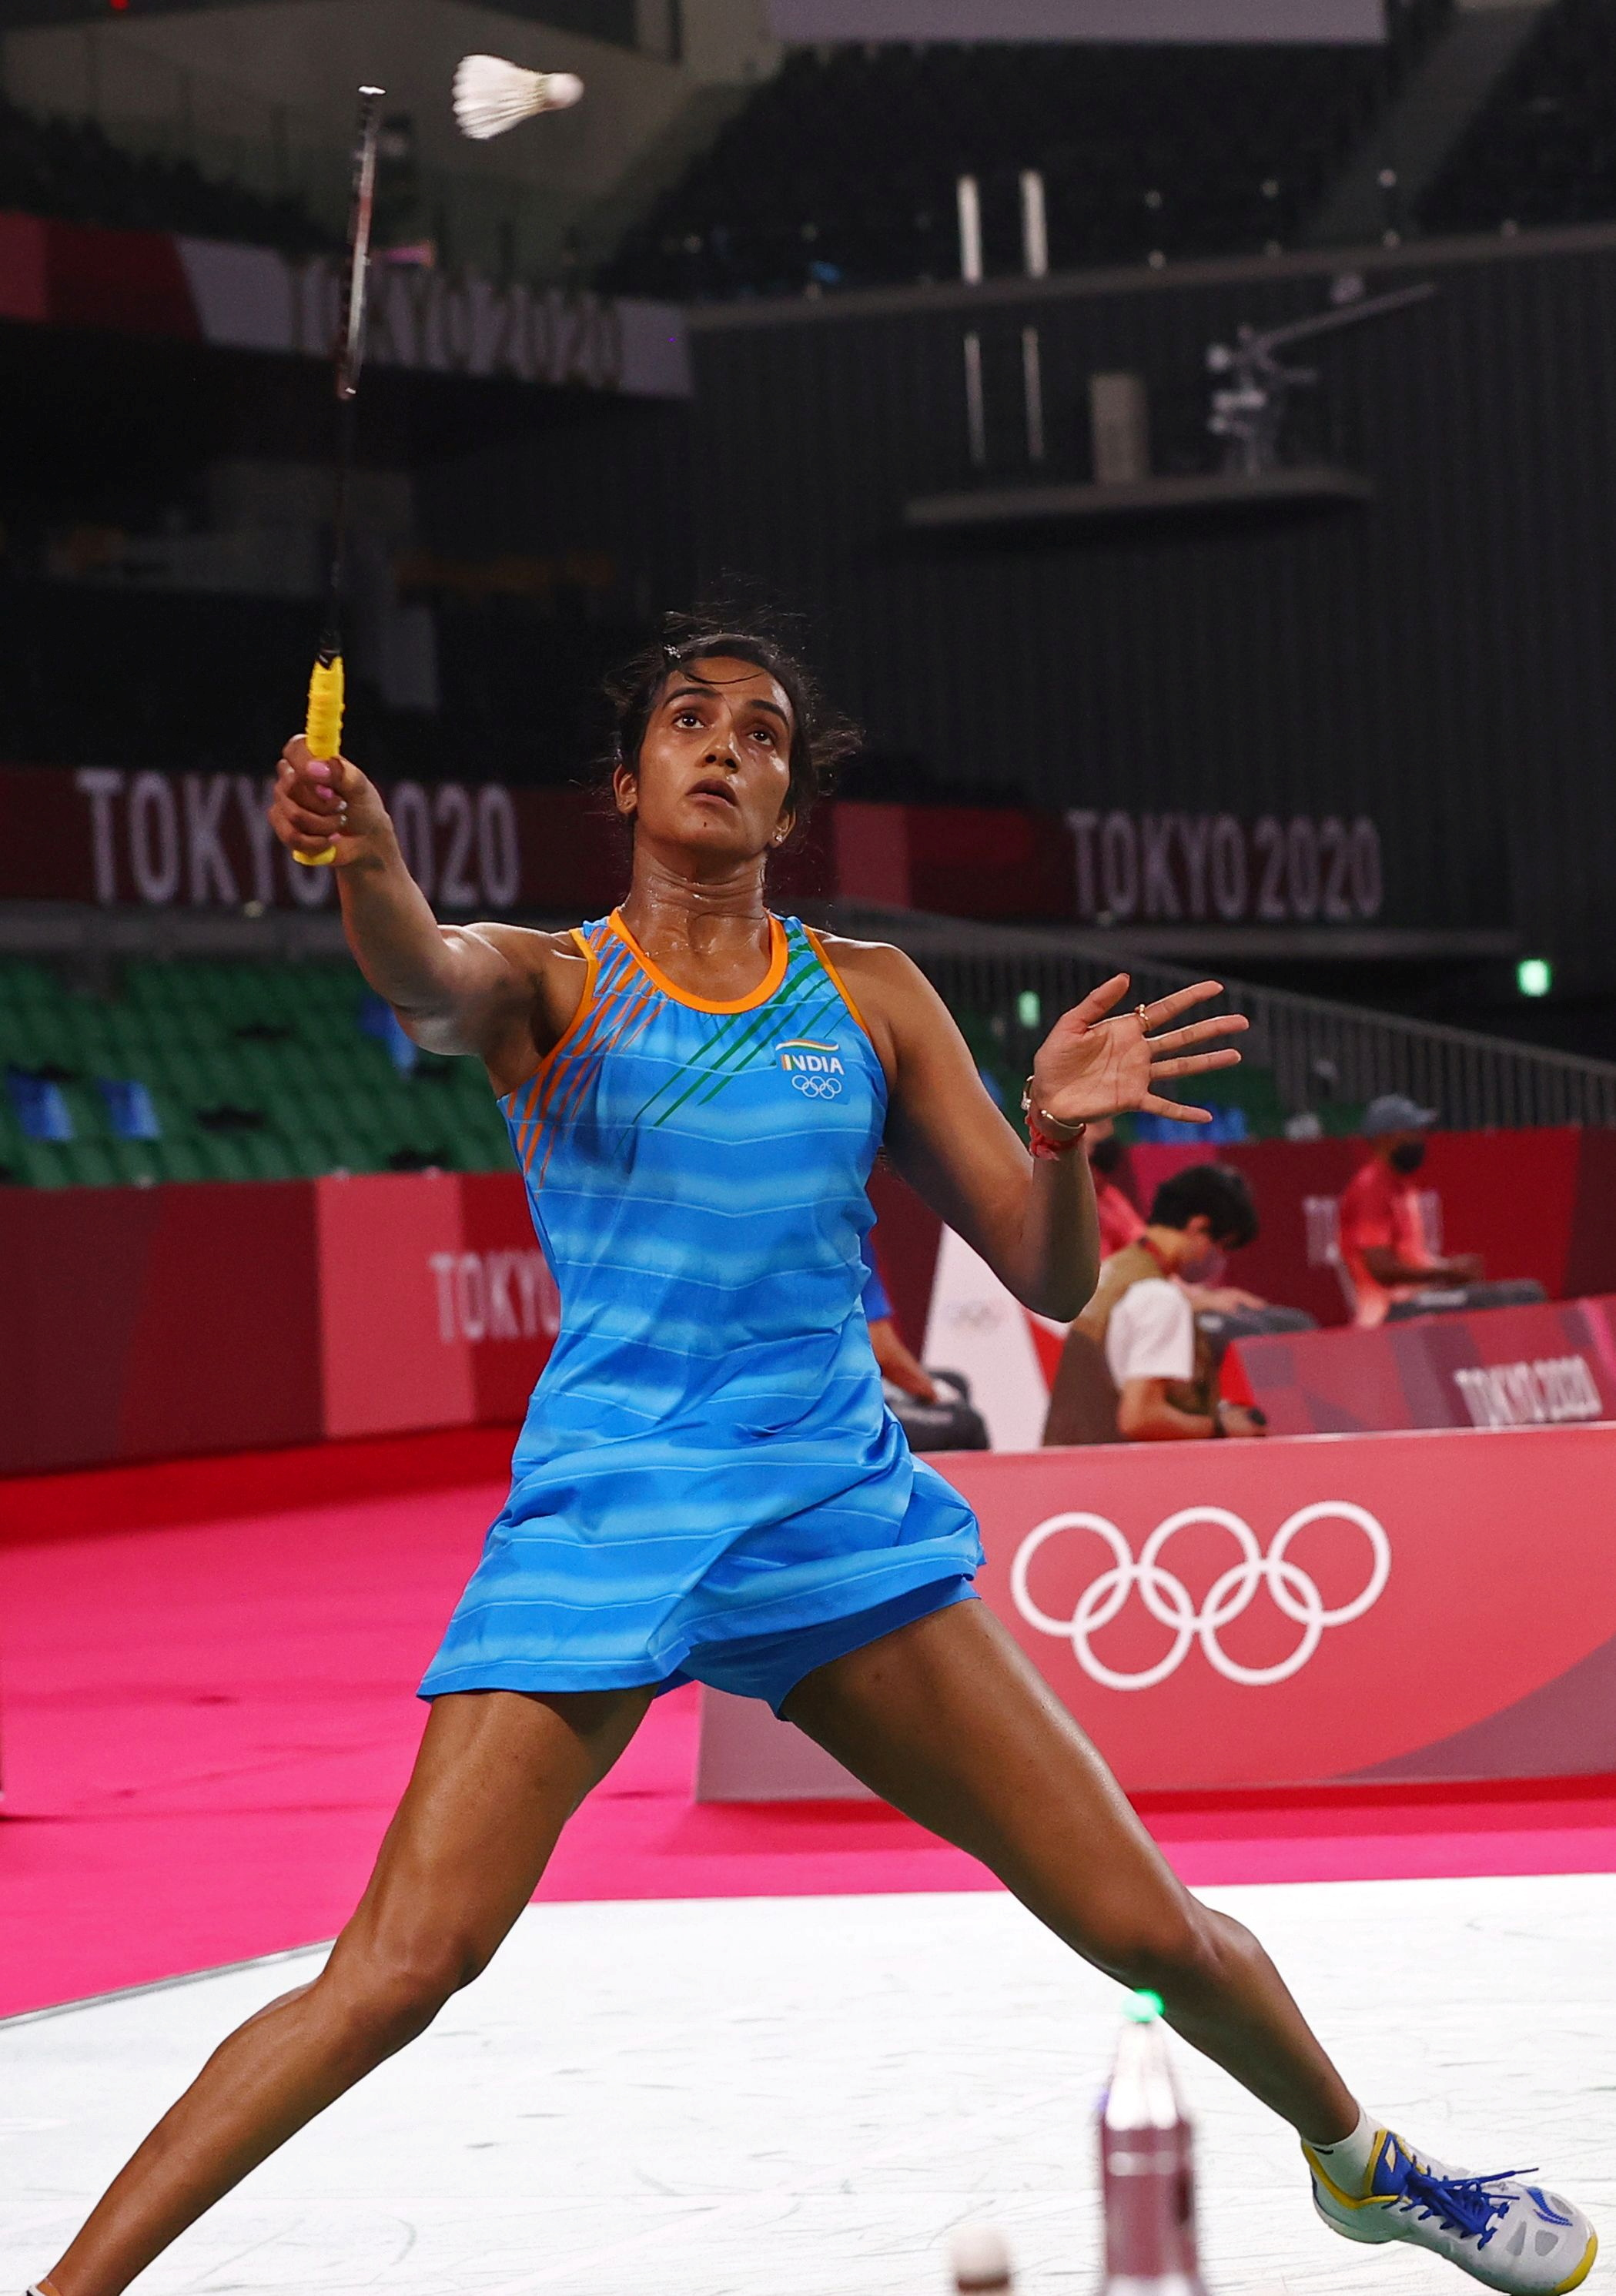 Tokyo 2020 Olympics - Badminton - Women's Singles - Group Stage - MFS - Musashino Forest Sport Plaza, Tokyo, Japan – July 28, 2021. P.V. Sindhu of India in action during the match against Cheung Ngan Yi of Hong Kong. REUTERS/Leonhard Foeger